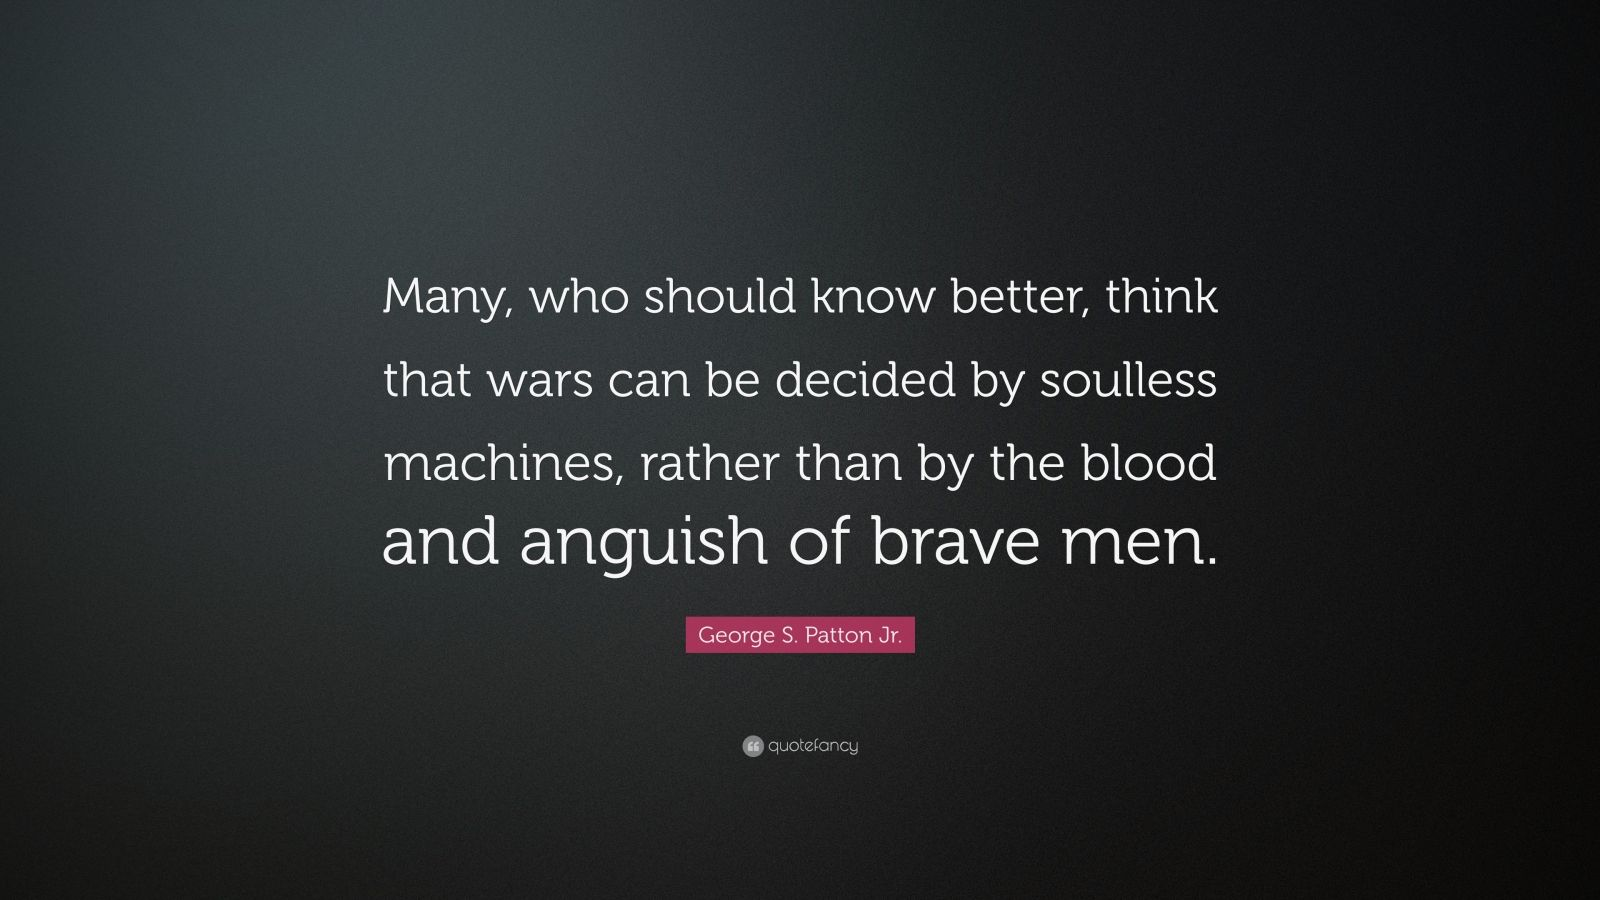 """George S. Patton Jr. Quote: """"Many, who should know better, think that wars can be decided by soulless machines, rather than by the blood and anguish of brave men."""""""